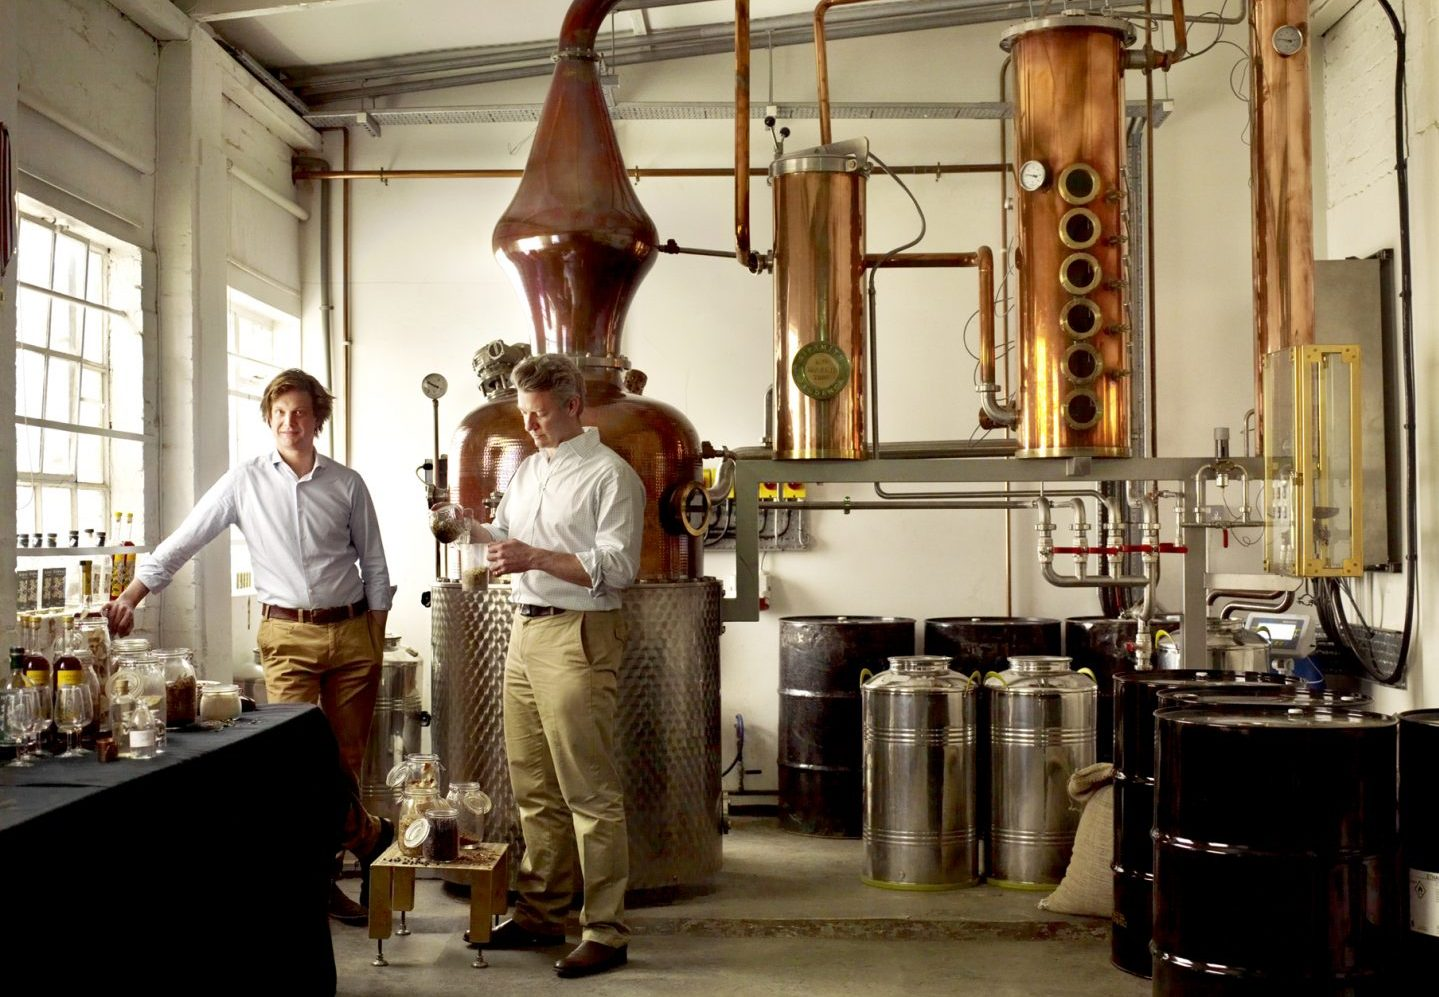 The Guys Behind Sipsmith Gin Shares About Taking The Plunge And Making History